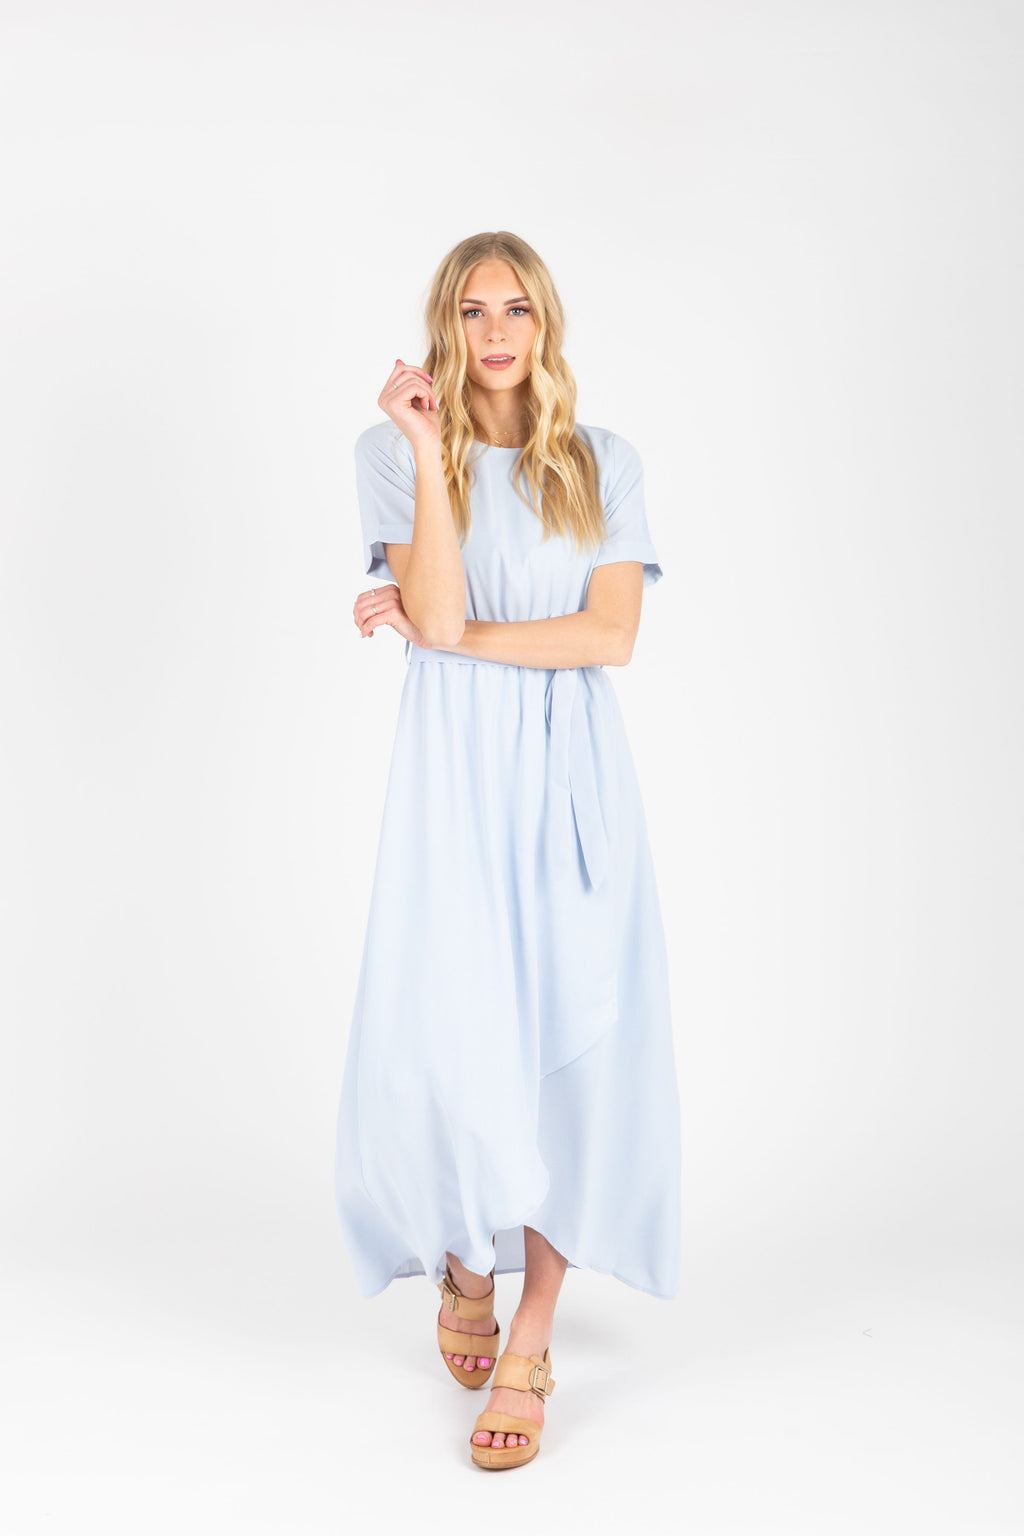 The Lily Empire Wrap Dress in Powder Blue